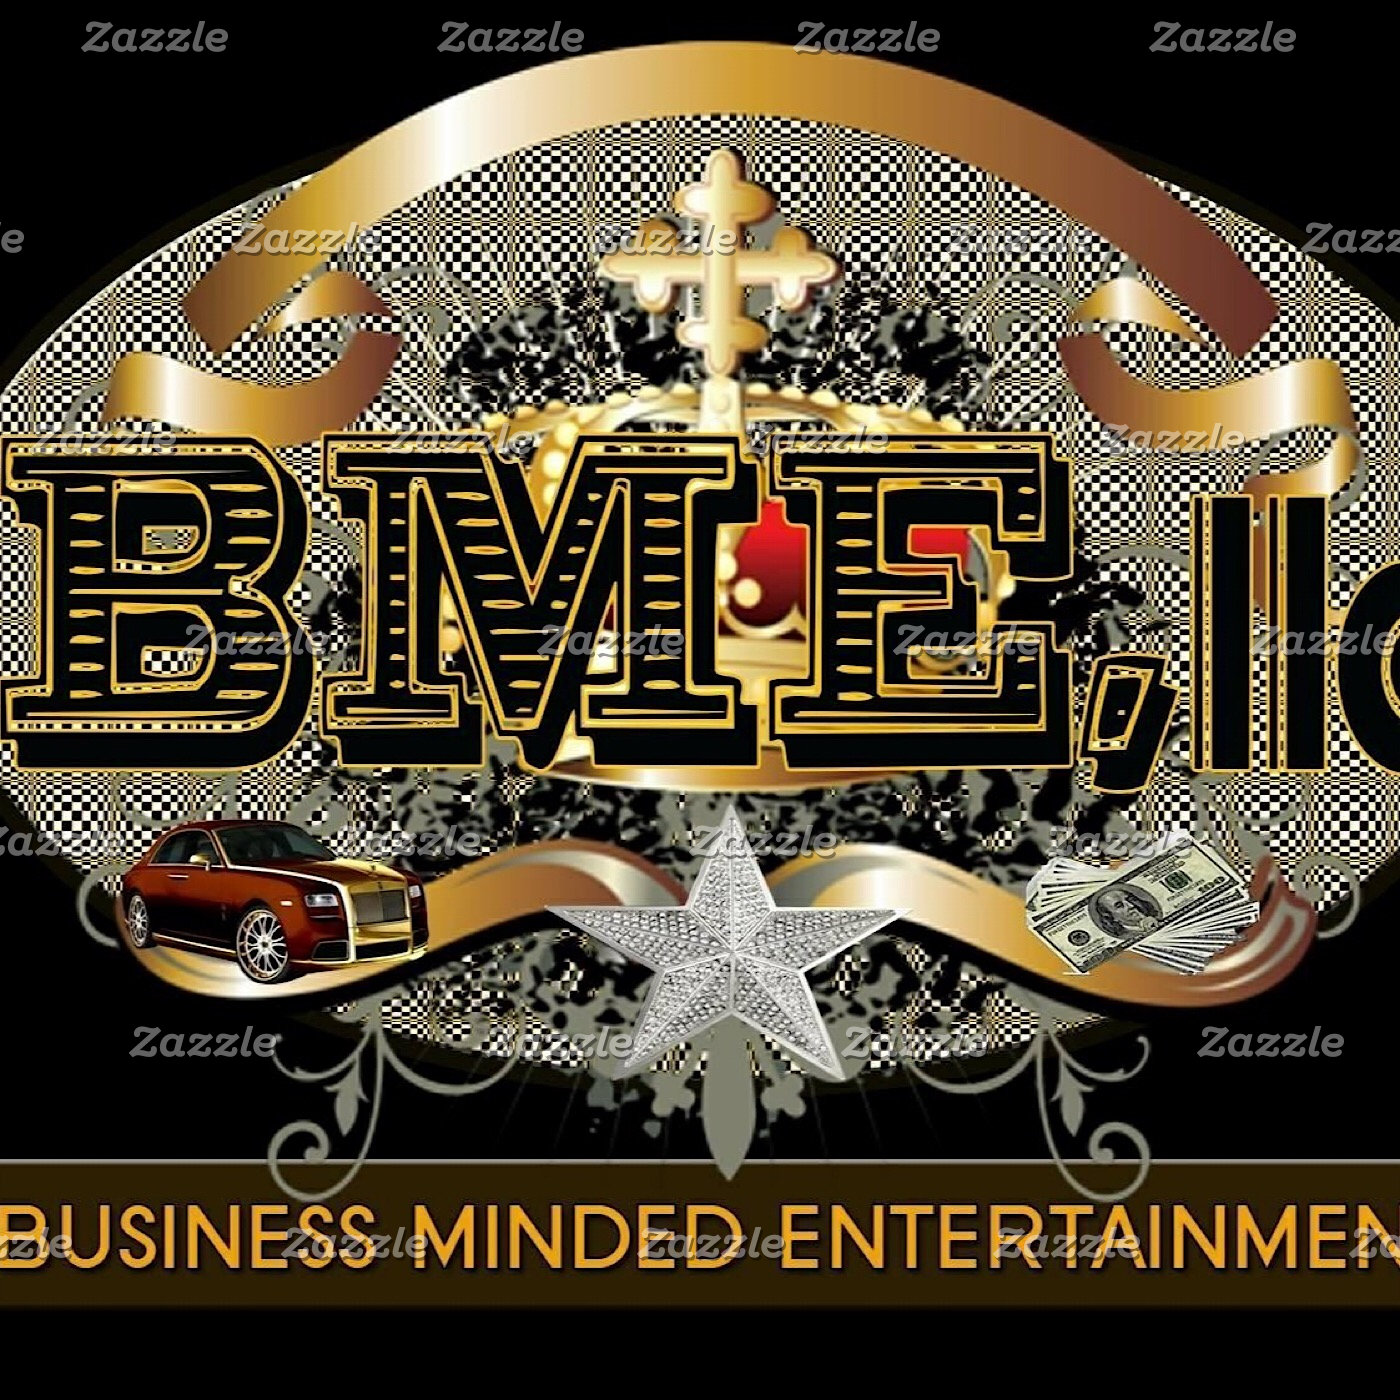 BUSINESS_MINDED_GEAR